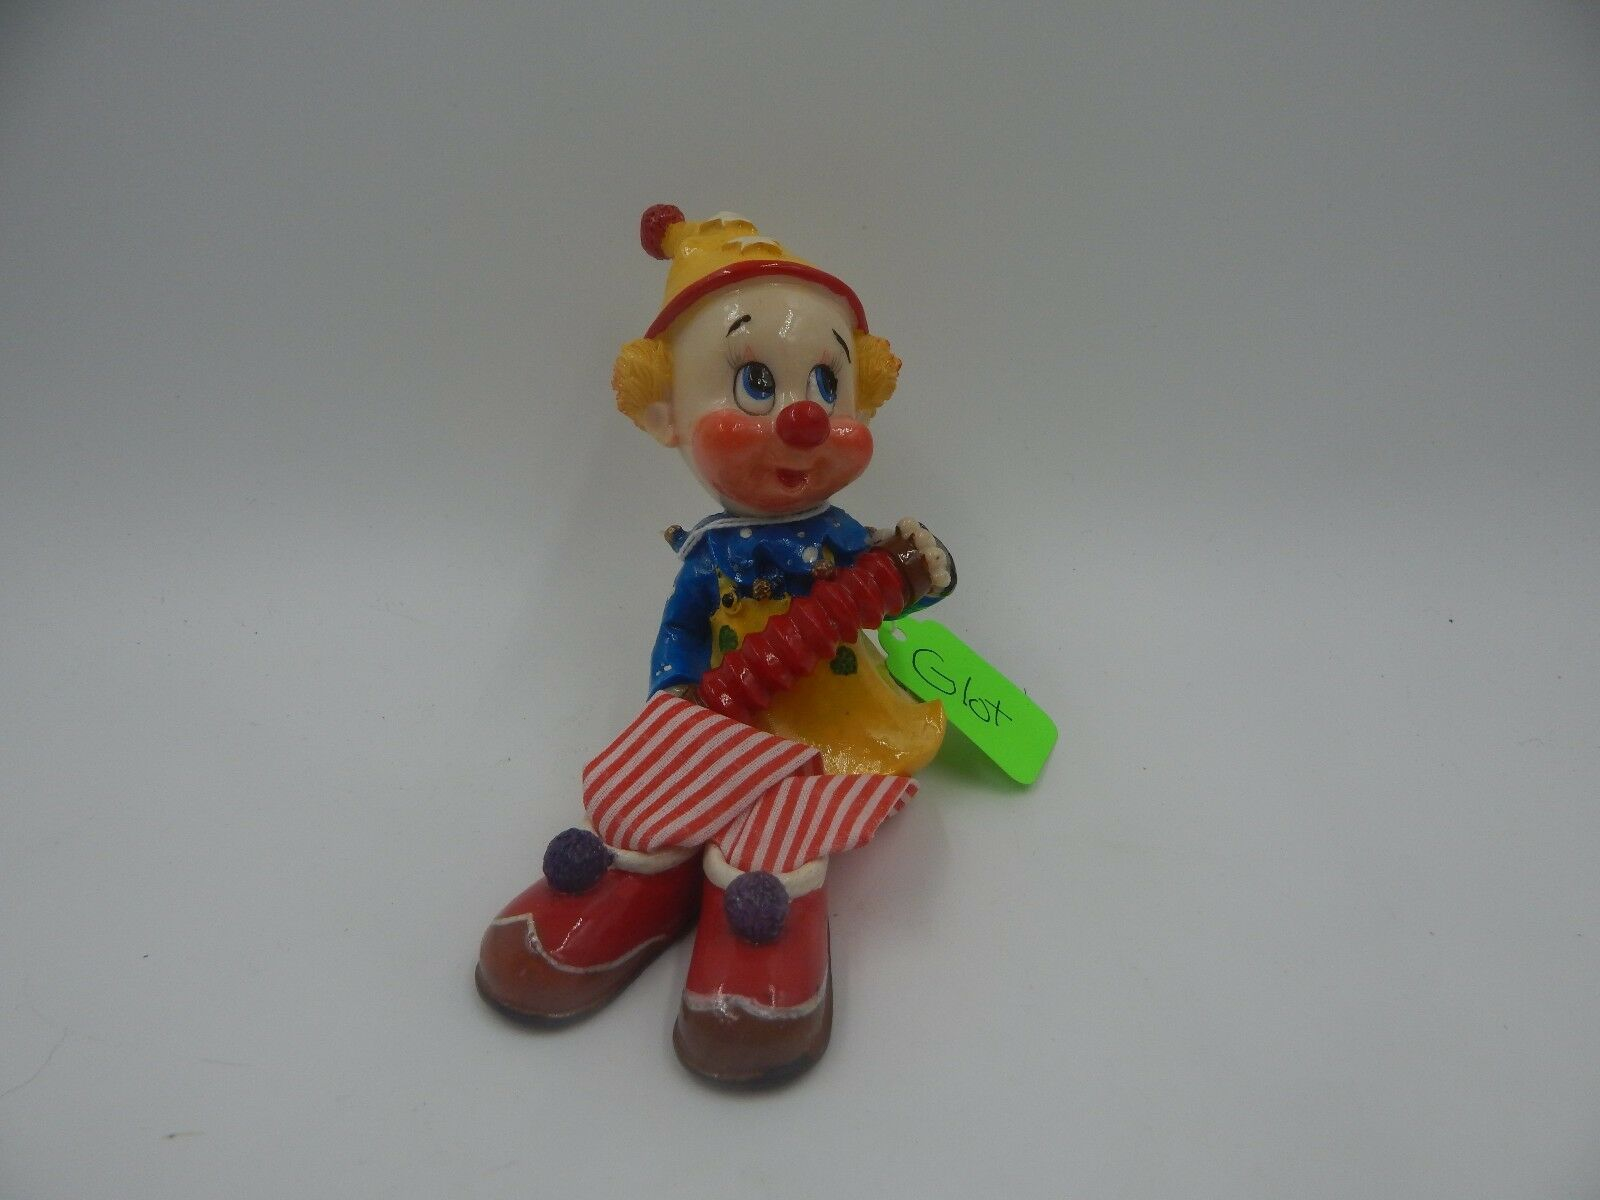 Vintage Handmade Clown Doll Puppet with Accordion 9